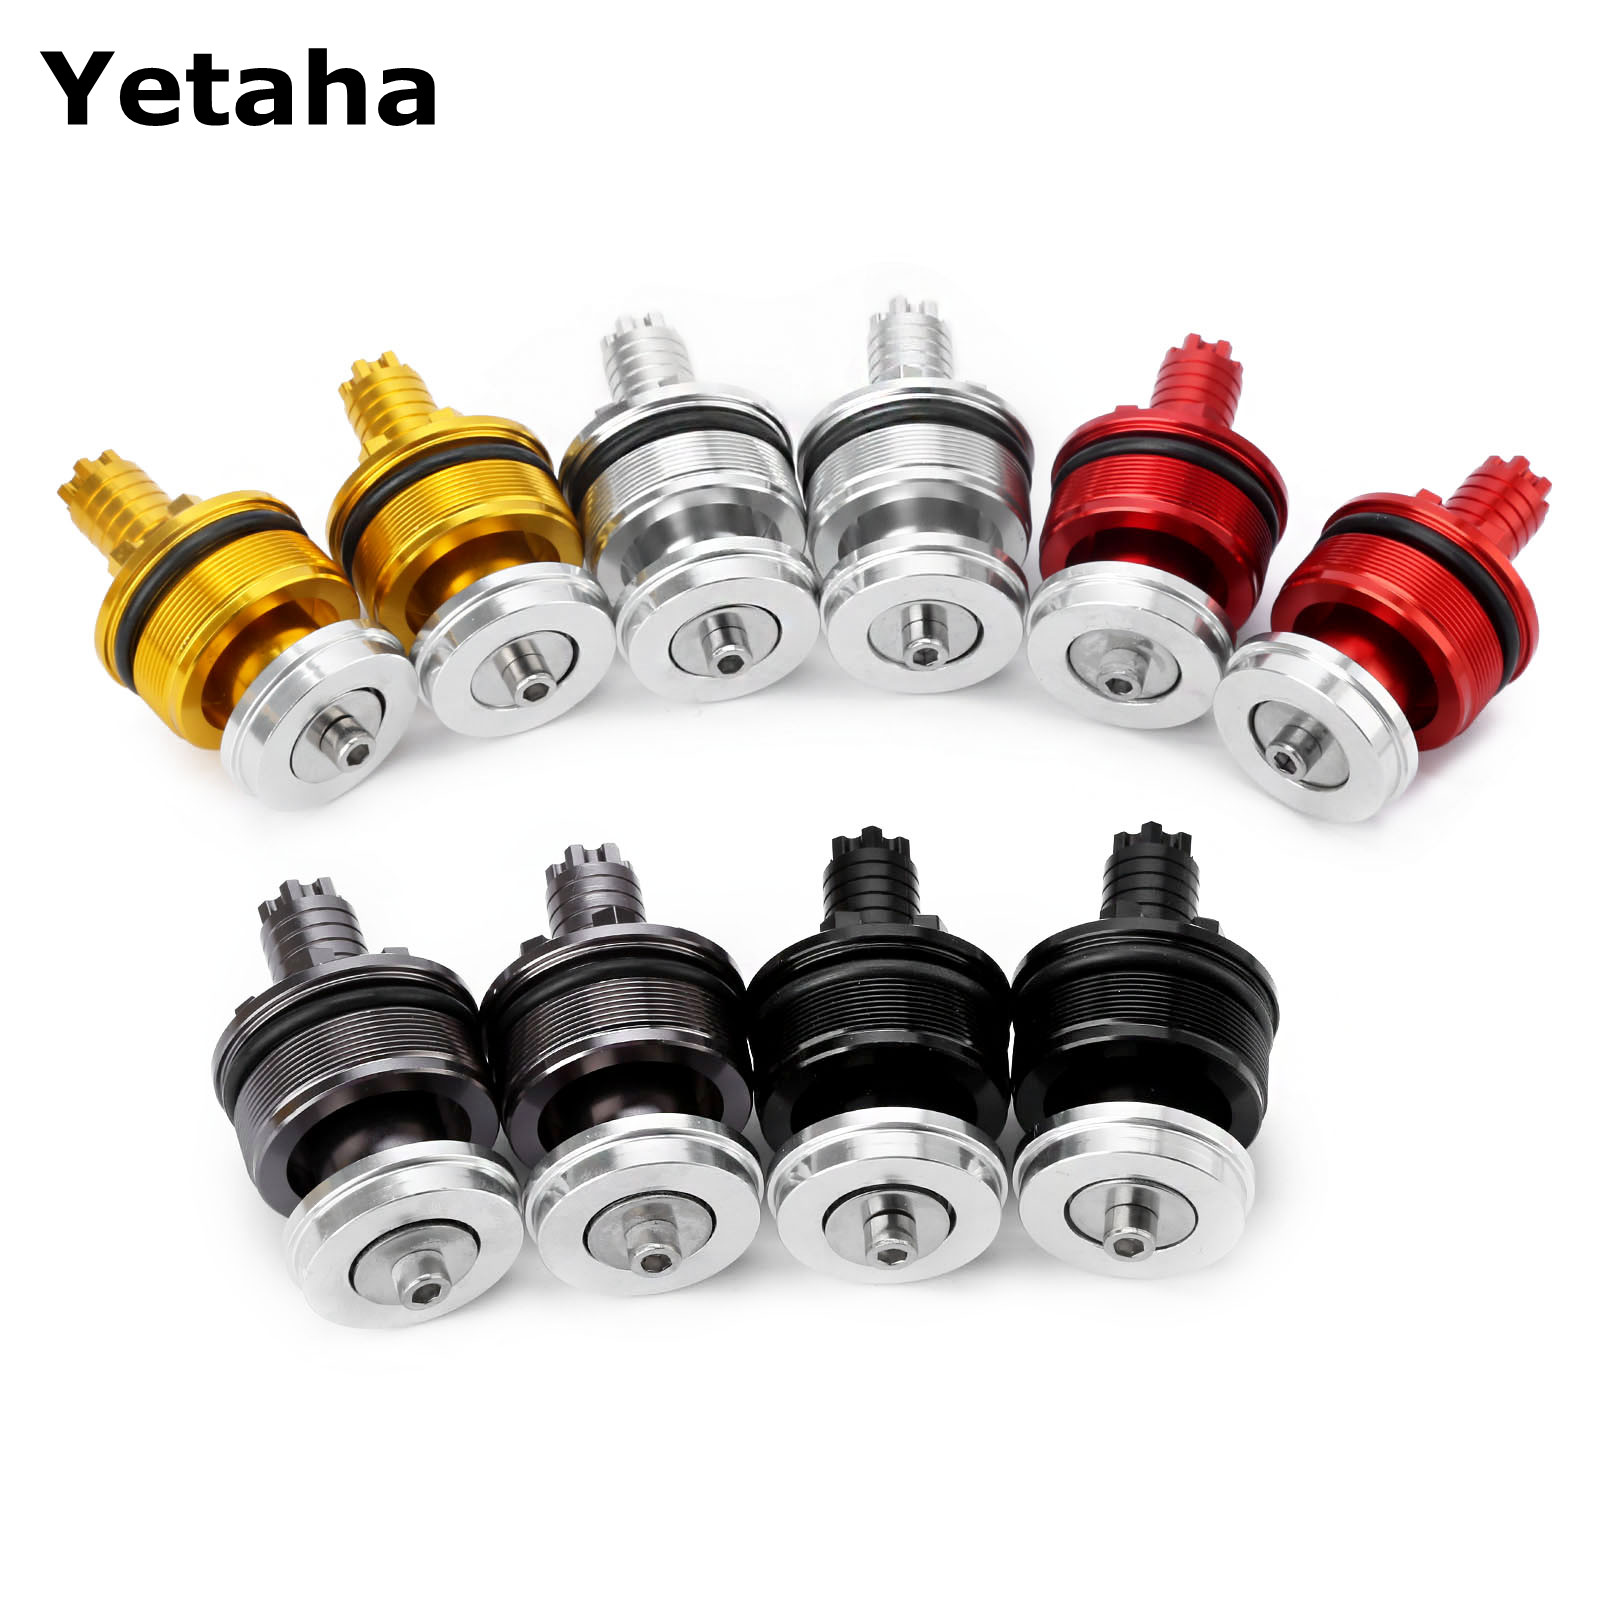 1Pair Motorcycle Preload Adjusters Fork Bolts Cap 41MM CNC Aluminum For Yamaha YZF R3 2015 2016 YZF R25 2013 2014 High Quality